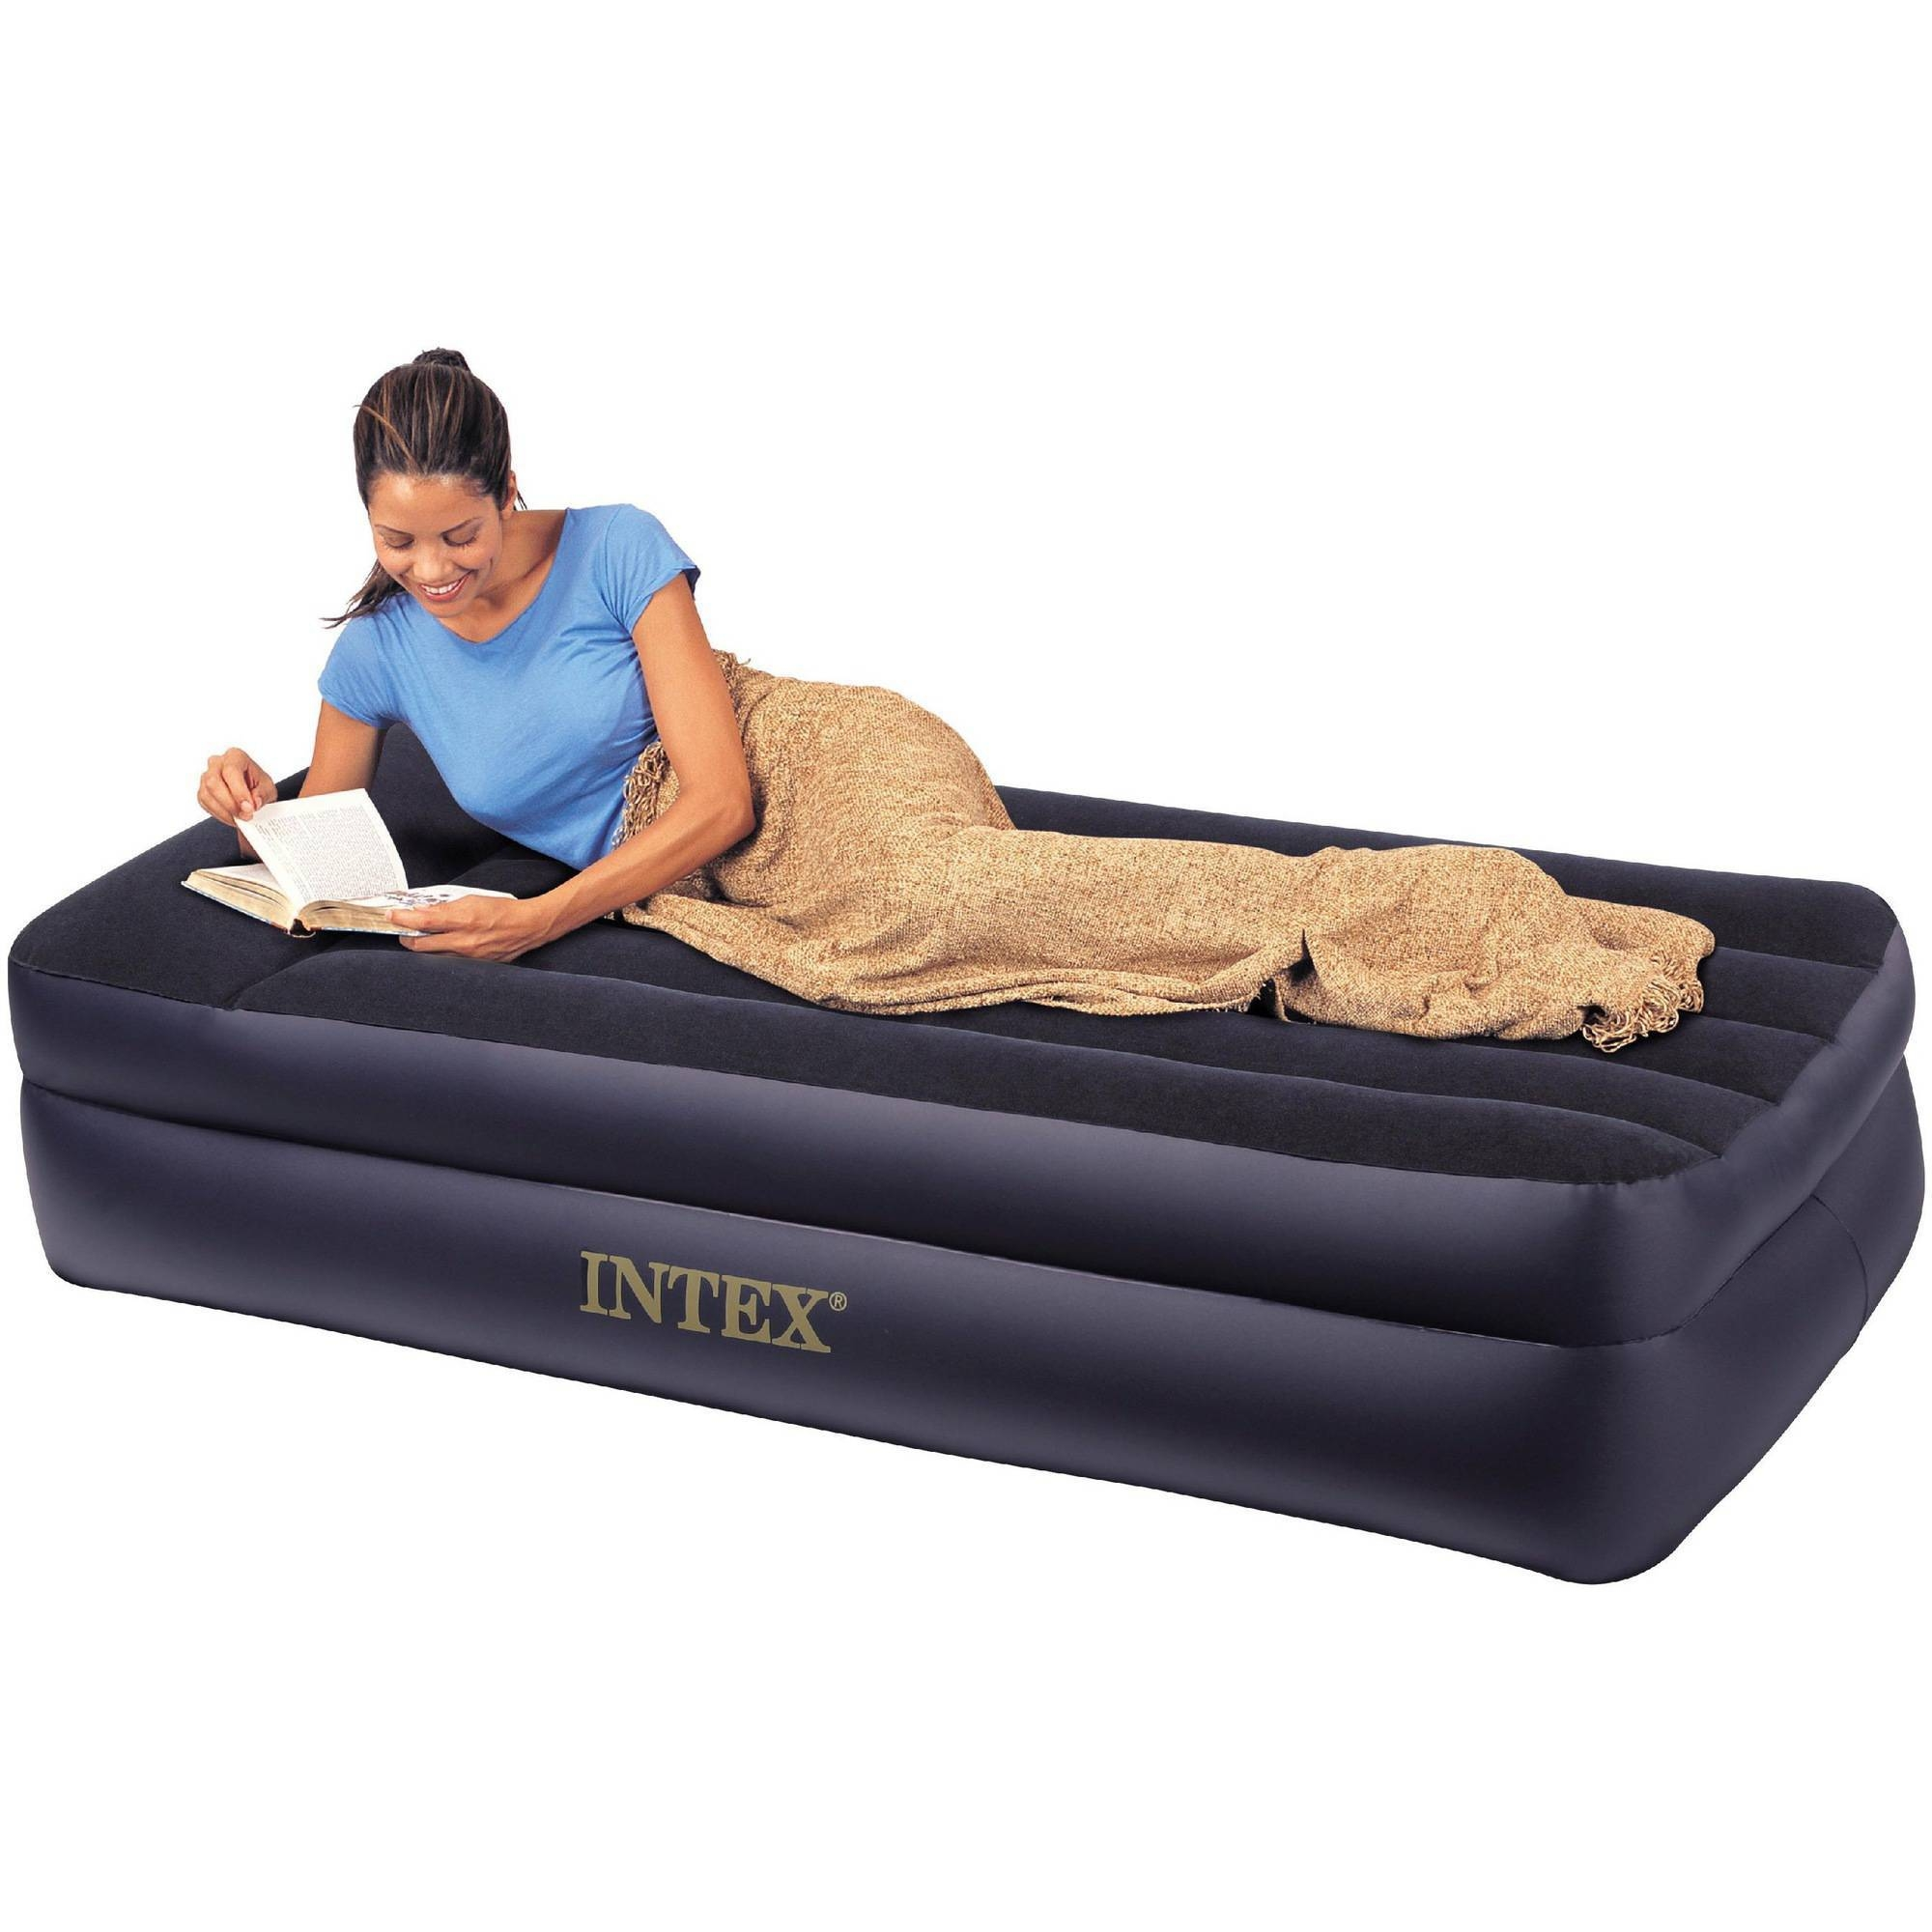 Intex Deluxe Twin Pillow Rest Raised Soft Flocked Air Mattress + Regarding Inflatable Full Size Mattress (Photo 9 of 15)